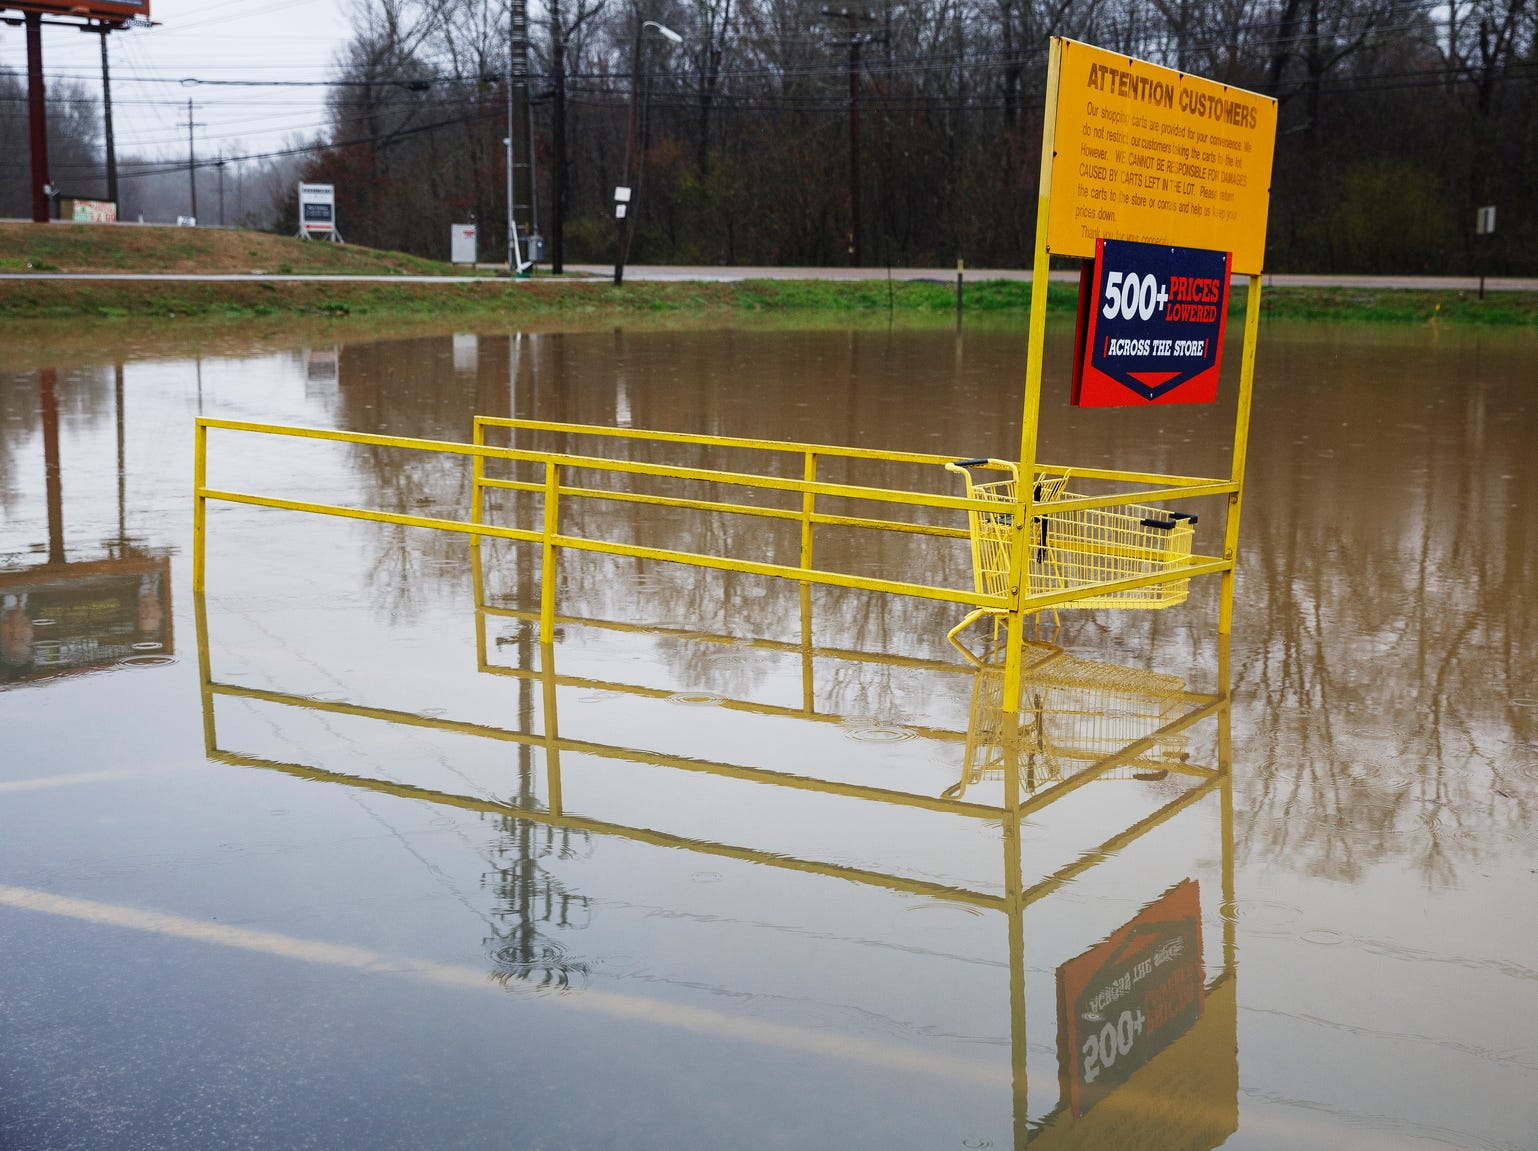 Middle Valley Plaza is seen flooded in Soddy-Daisy, Tenn., Saturday, Feb. 23, 2019, after heavy rain overnight. Homes, highways, parks and bridges throughout the South have been flooded or rendered out of commission Saturday, as the toll of days of drenching rains swelled waterways and pooled over saturated lands amid the threat of severe storms. (Doug Strickland/Chattanooga Times Free Press via AP)